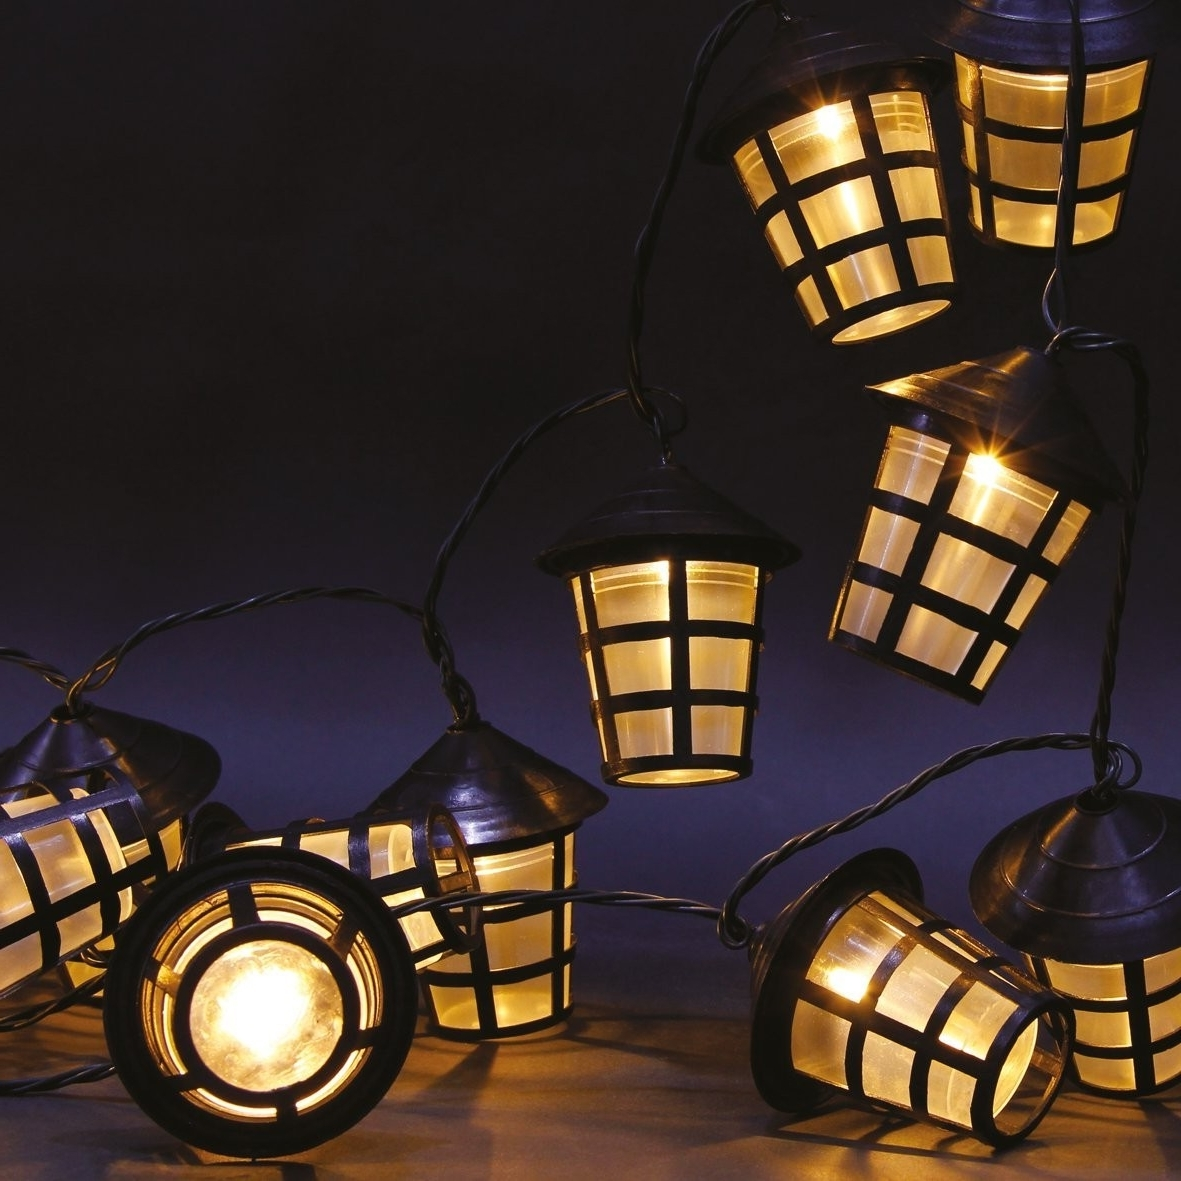 Led Outdoor Lanterns In Most Current 70 Warm White Led Garden Lantern String Lights (View 4 of 20)